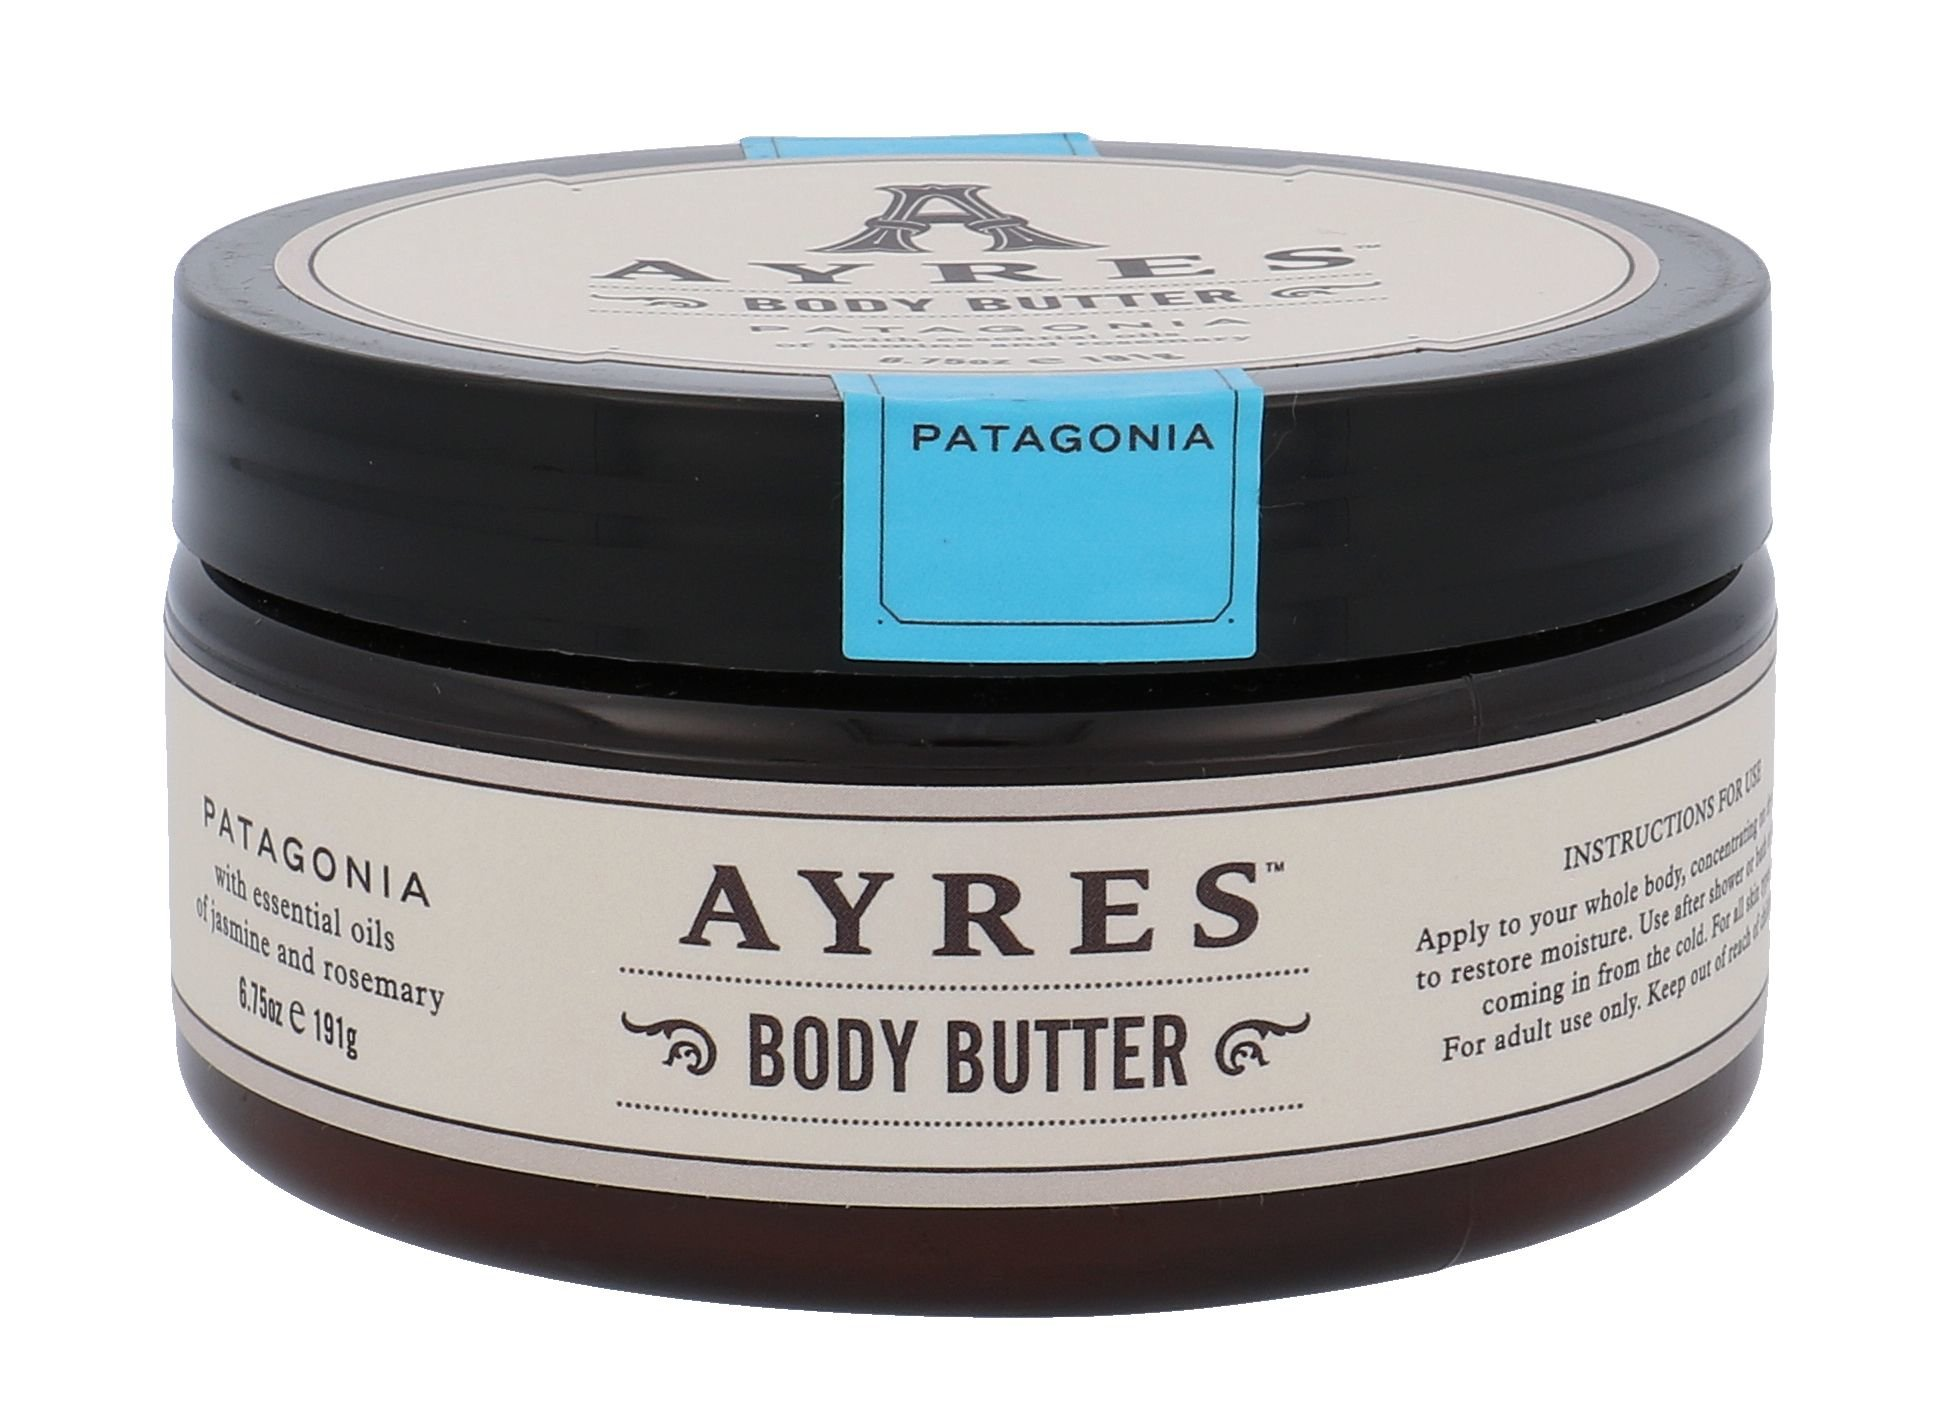 Ayres Patagonia Body Butter Cosmetic 191g